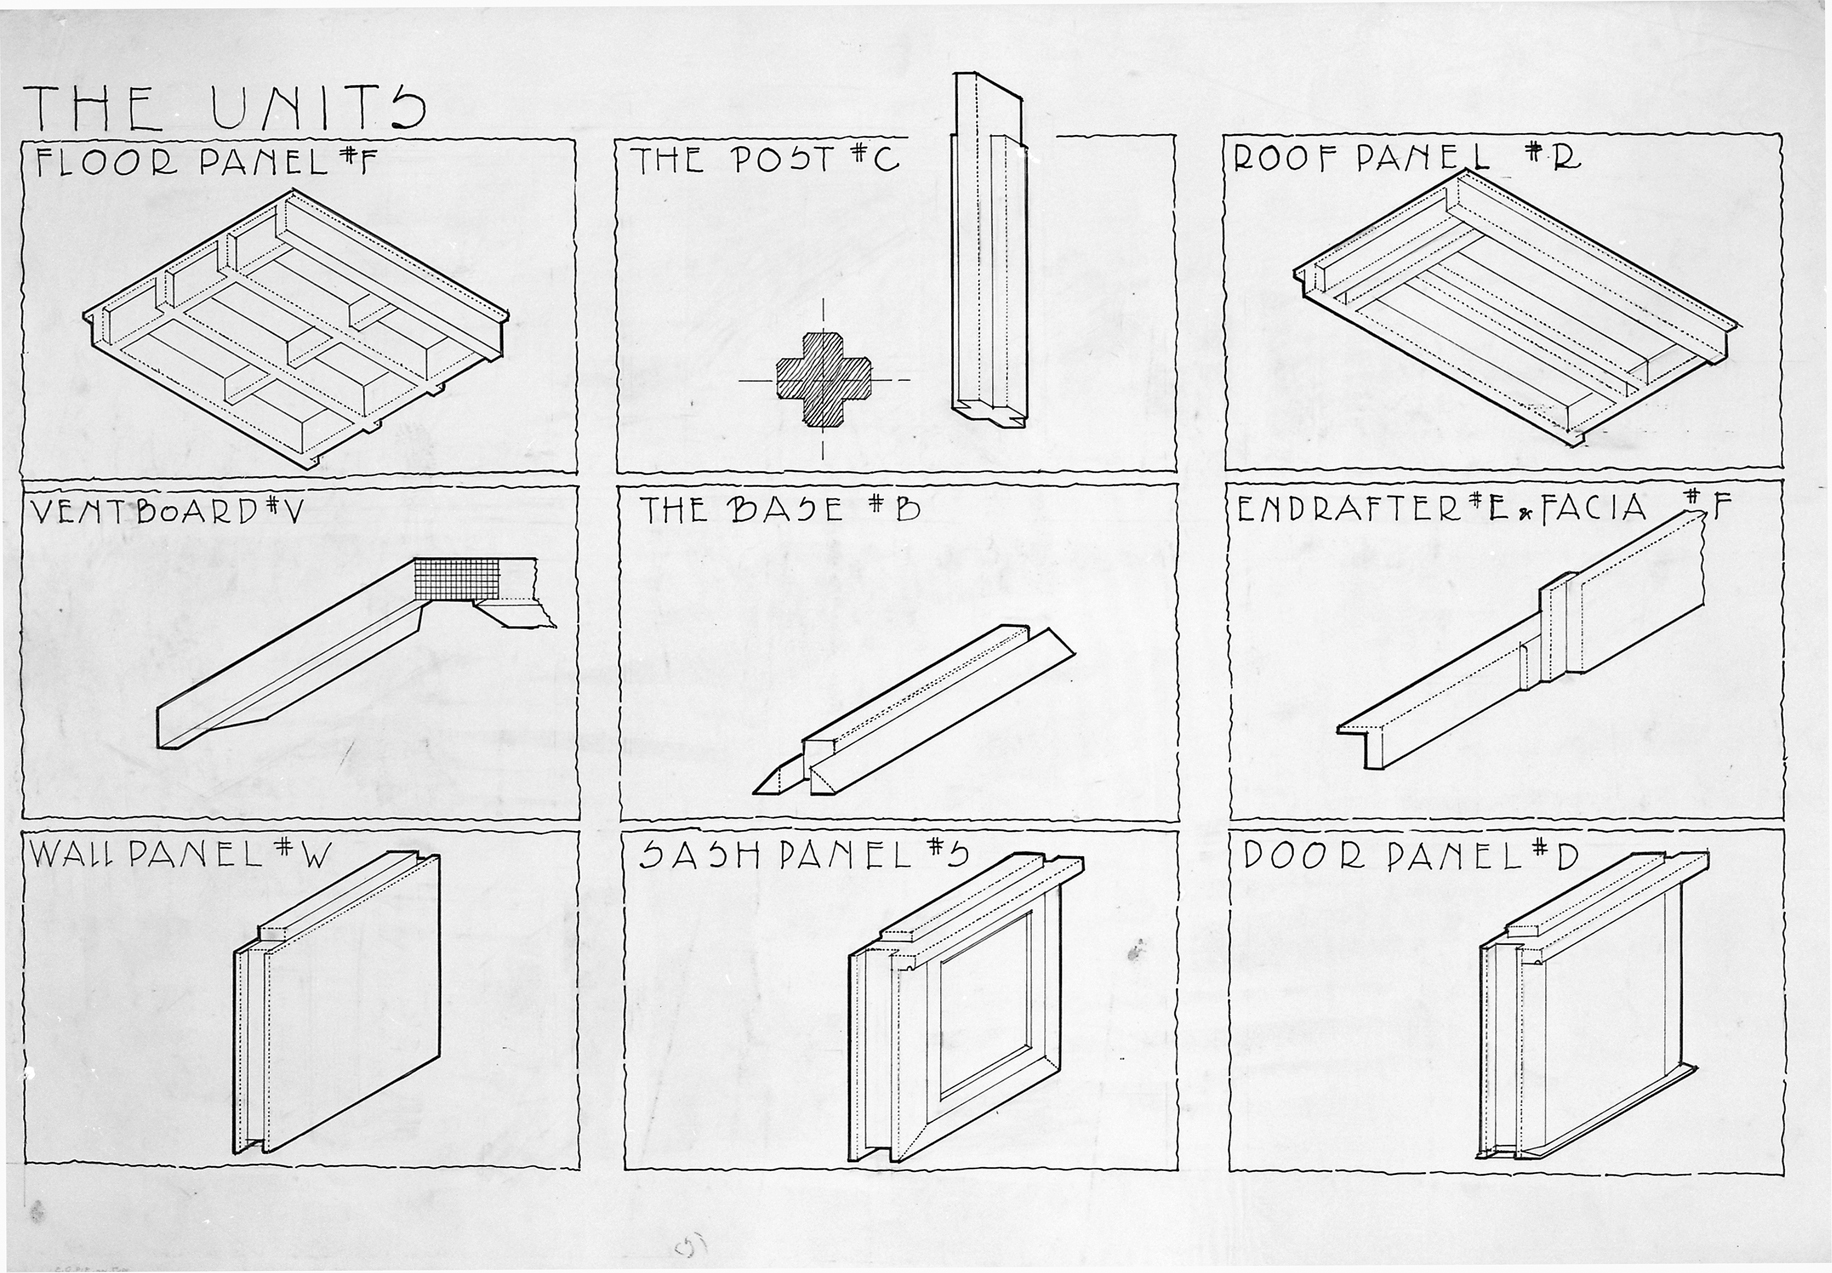 Rudolph Schindler's drawing of the elements in the panel-post construction system.